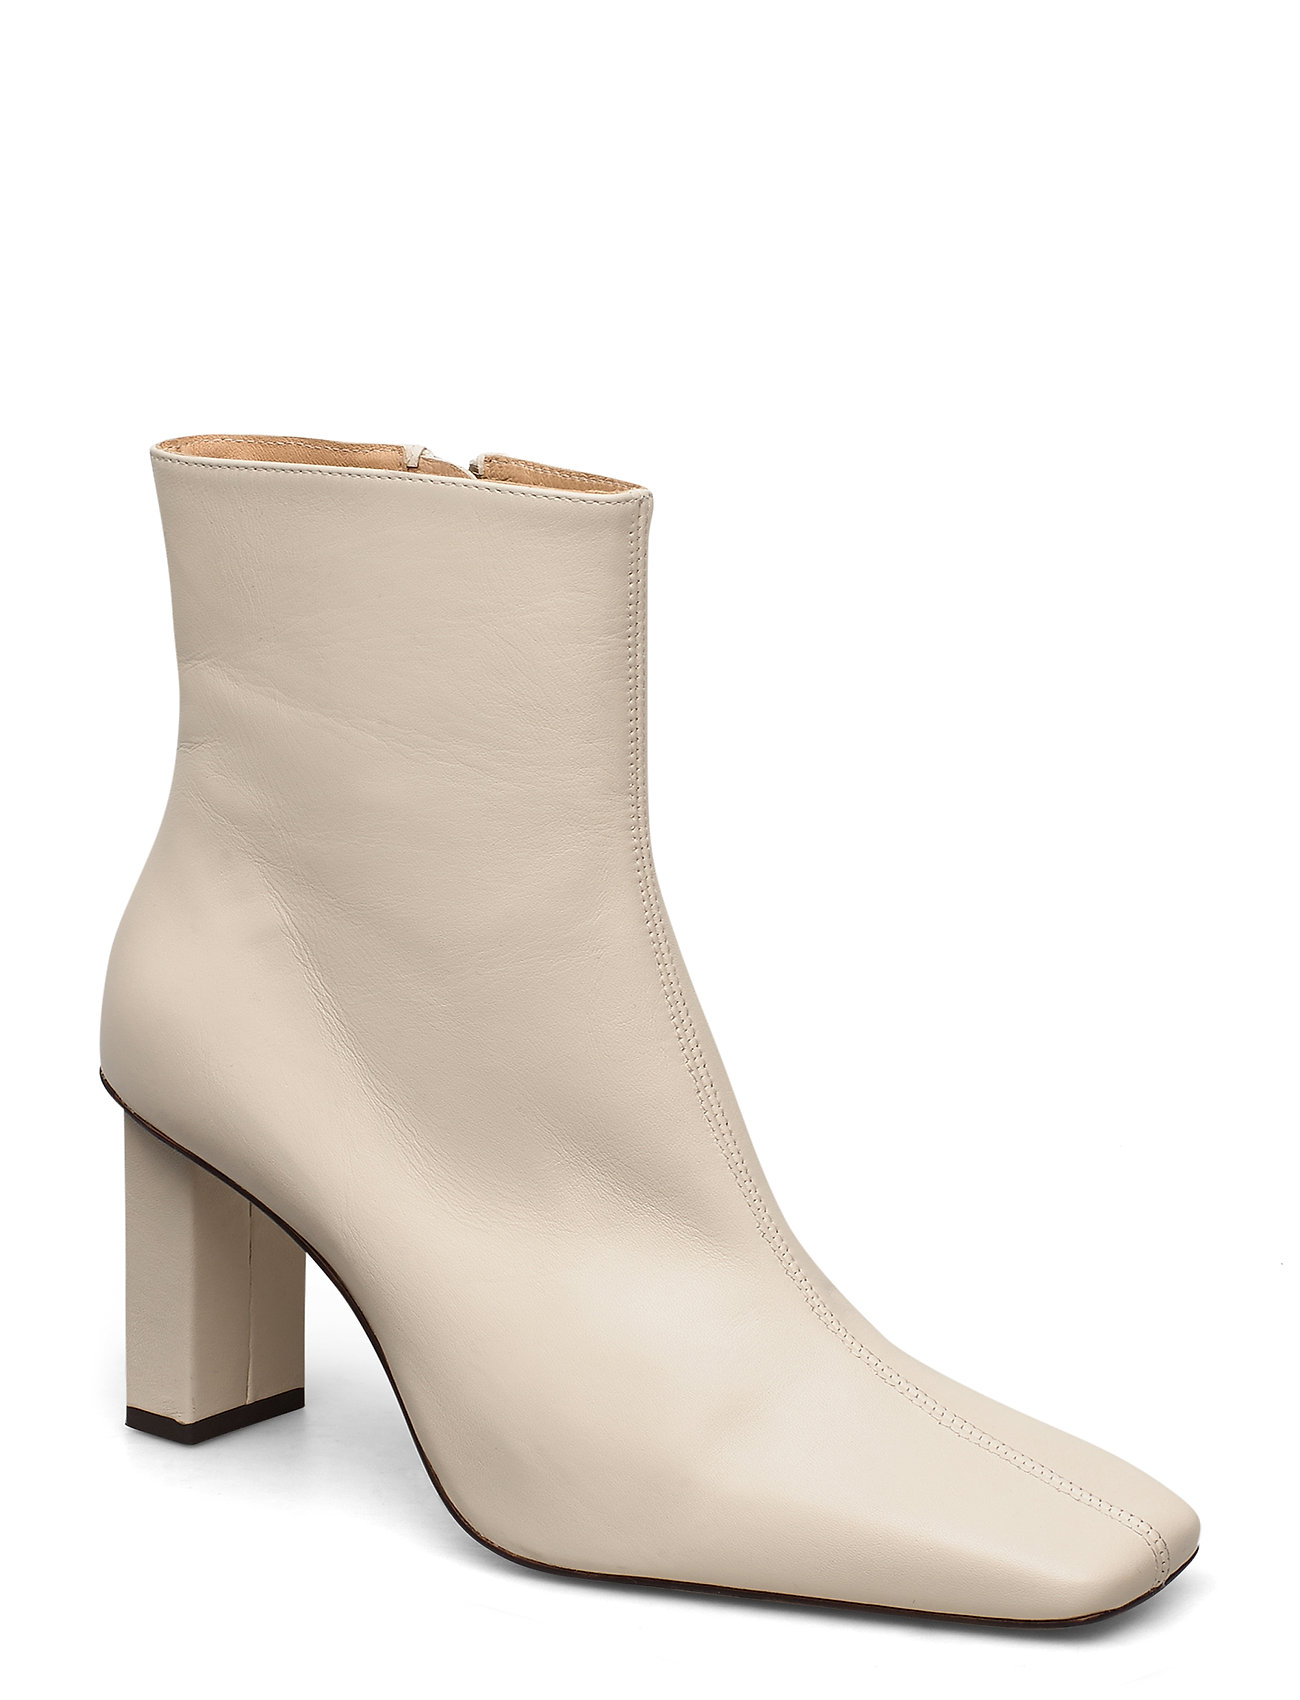 Image of Joan Le CarrÉ Ankle Boot Shoes Boots Ankle Boots Ankle Boot - Heel Creme ANNY NORD (3422268703)